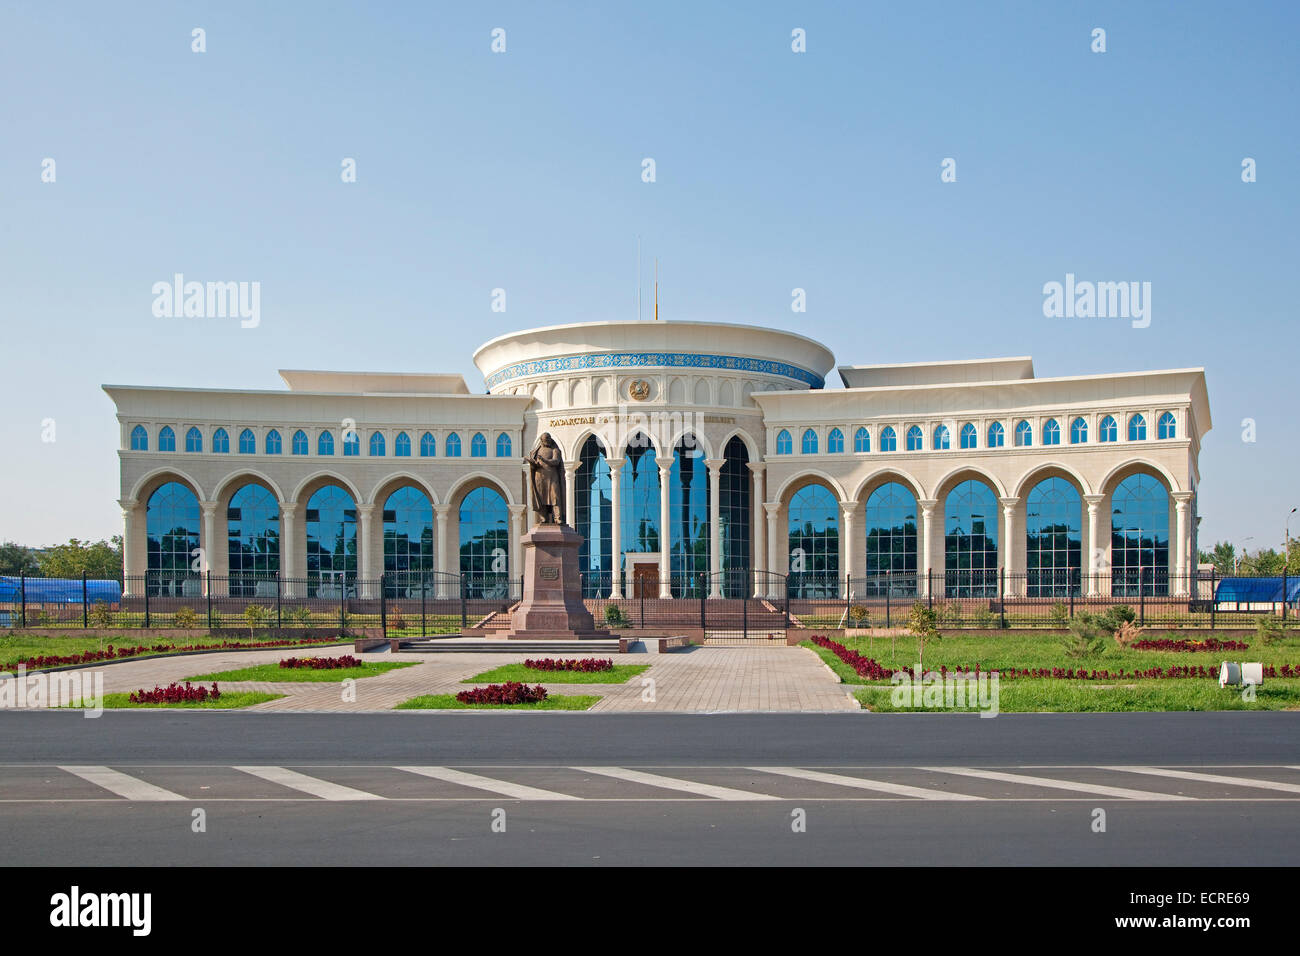 The Kazakhstan Embassy building and monument to the national poet Abay in Tashkent, Uzbekistan - Stock Image